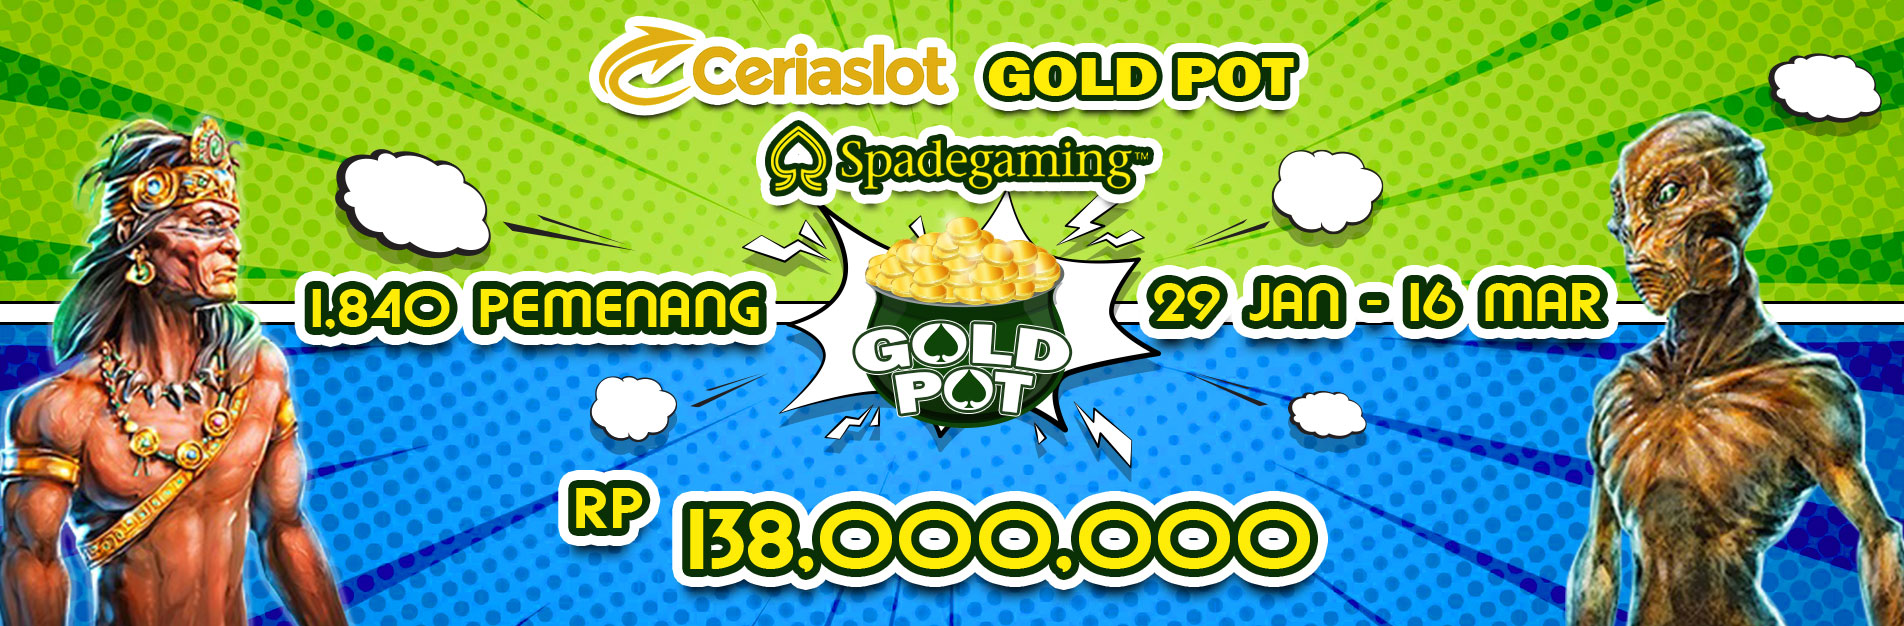 Turnamen Slot Spadegaming Gold Pot - CERIASLOT